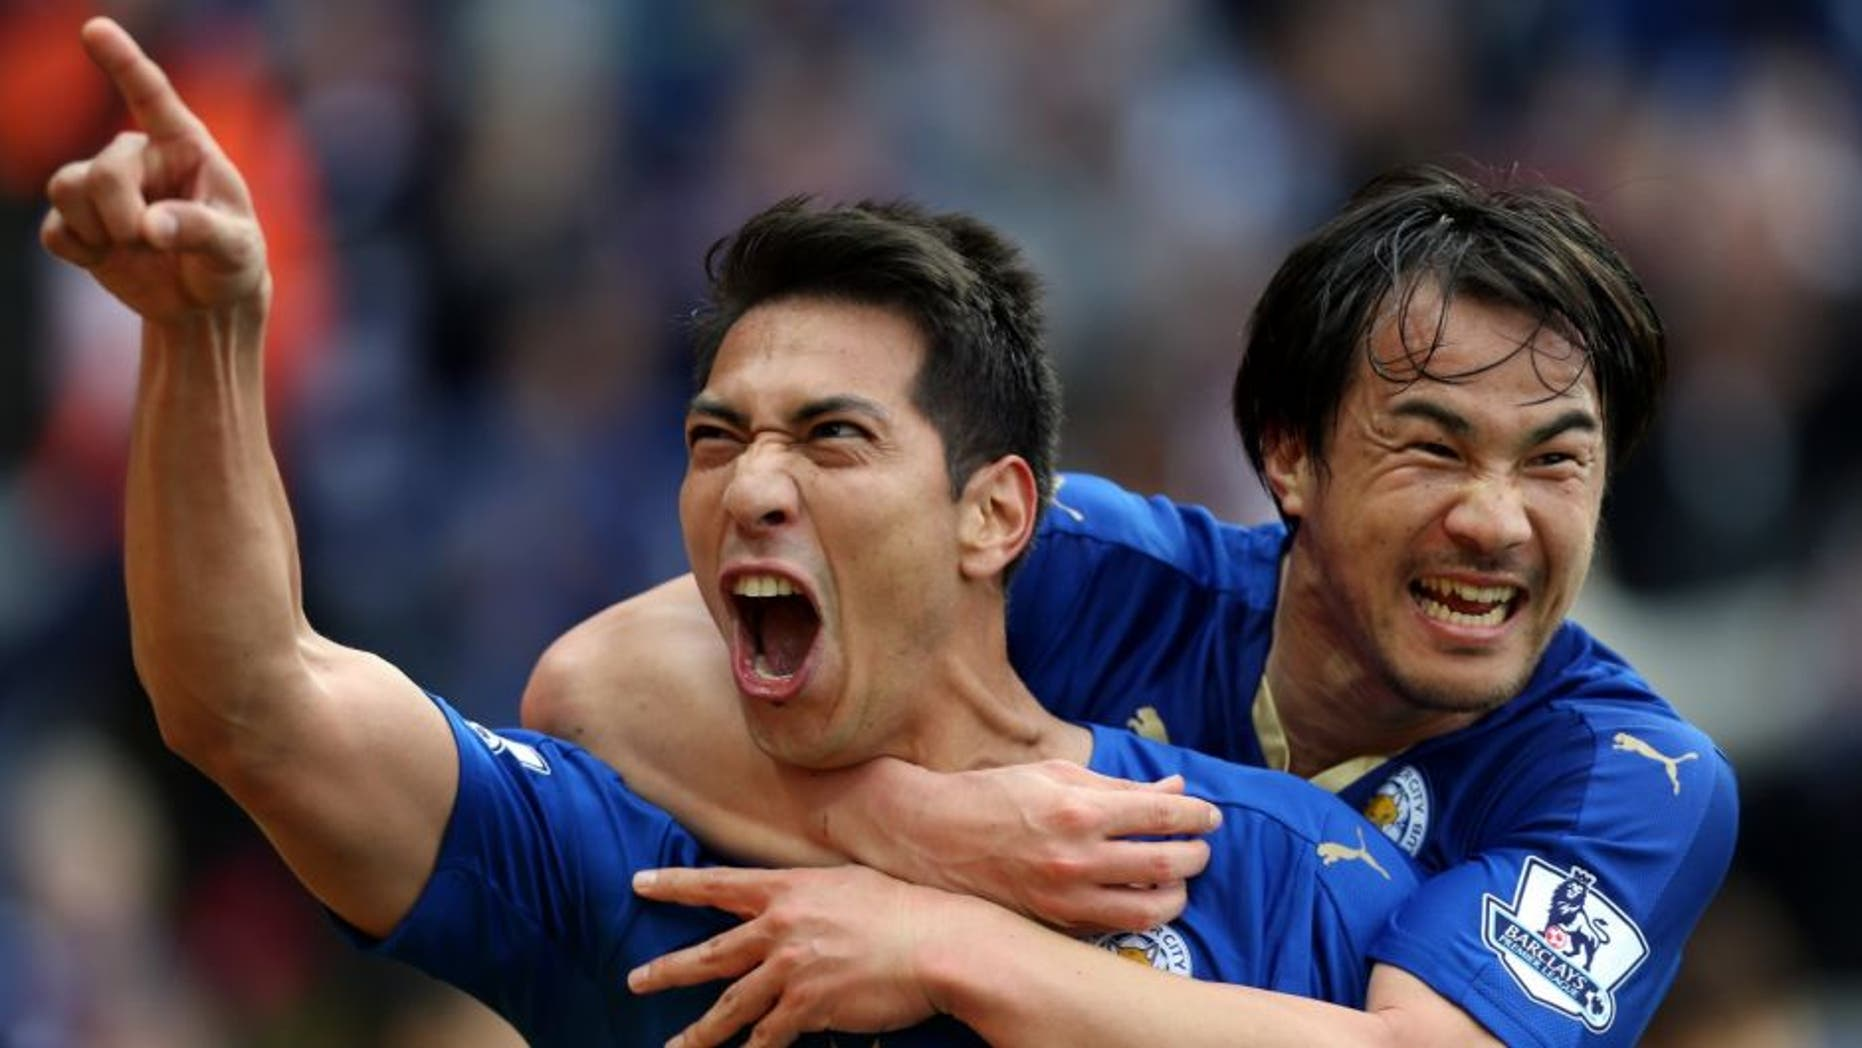 LEICESTER, ENGLAND - APRIL 24 : Leonardo Ulloa of Leicester City celebrates with Shinji Okazaki of Leicester City after scoring to make it 2-0 during the Barclays Premier League match between Leicester City and Swansea City at the King Power Stadium on April 24 , 2016 in Leicester, United Kingdom. (Photo by Plumb Images/Leicester City FC via Getty Images)